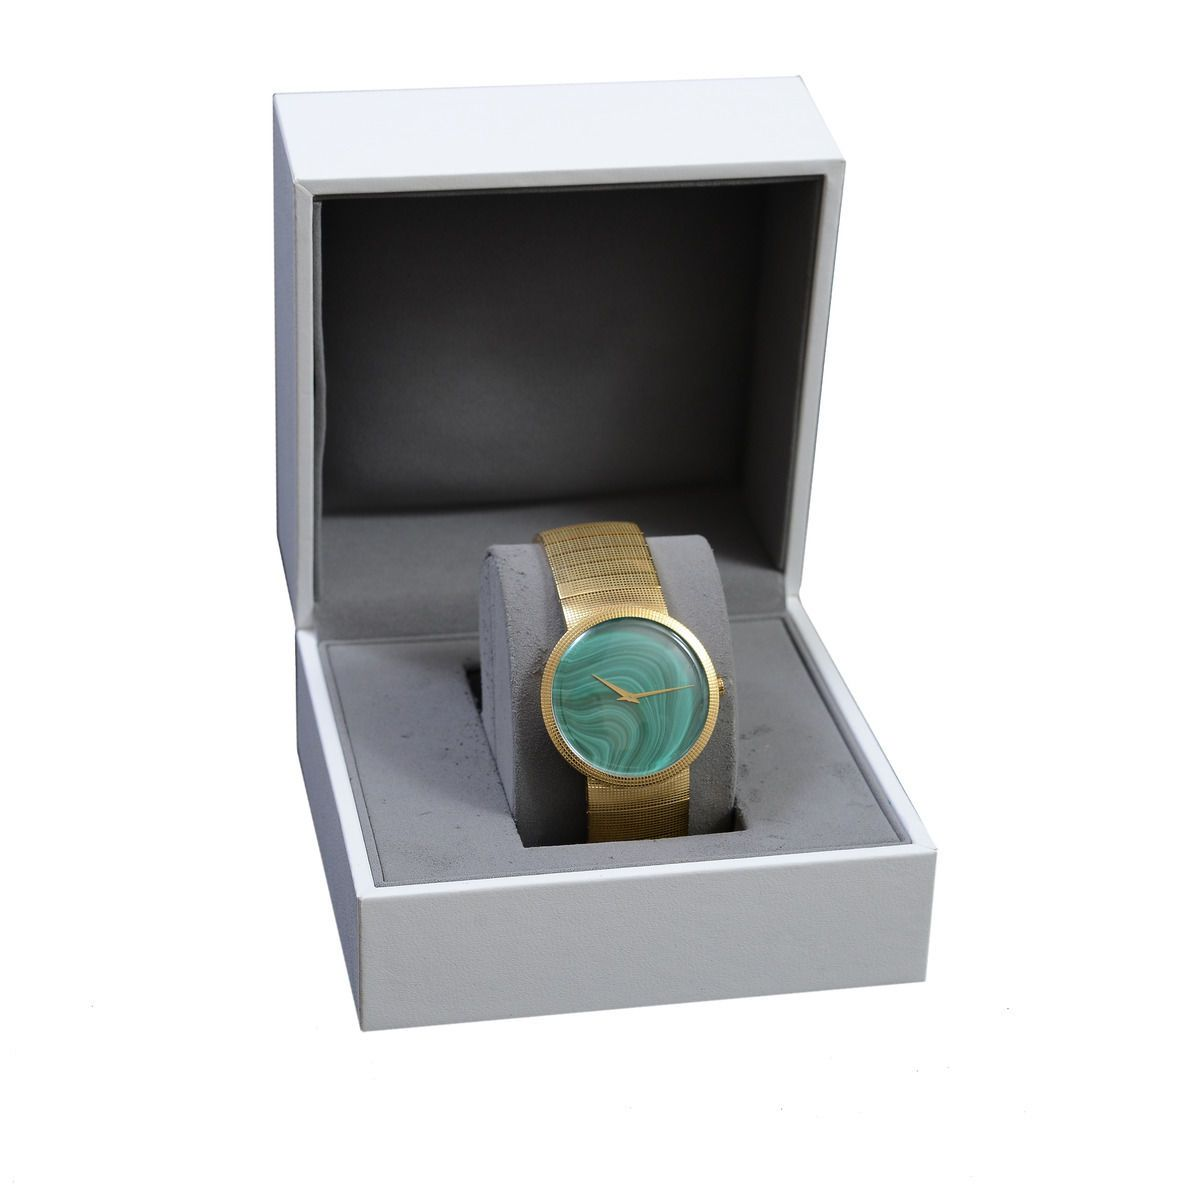 Christian Dior La D De Dior Malachite Dial Solid Swiss Gold Watch - http://menswomenswatches.com/christian-dior-la-d-de-dior-malachite-dial-solid-swiss-gold-watch/ COMMENT.